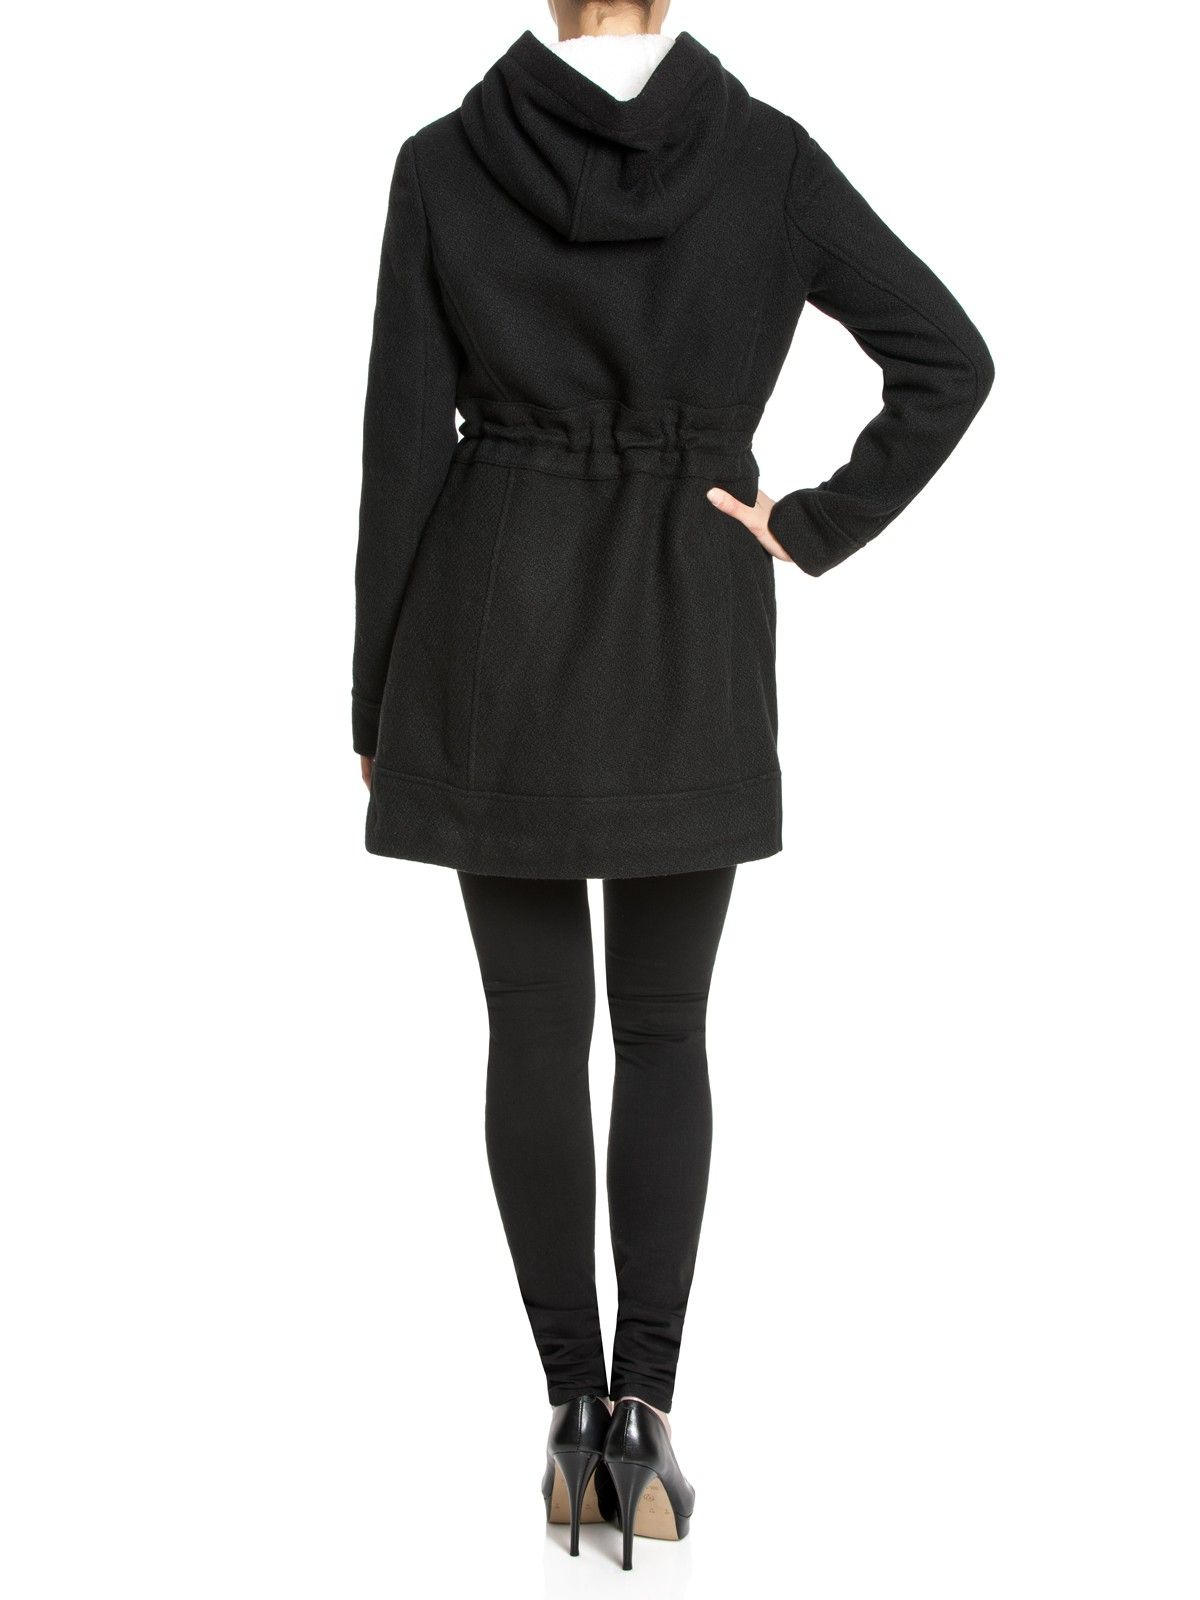 Osito de Peluche Coat - black